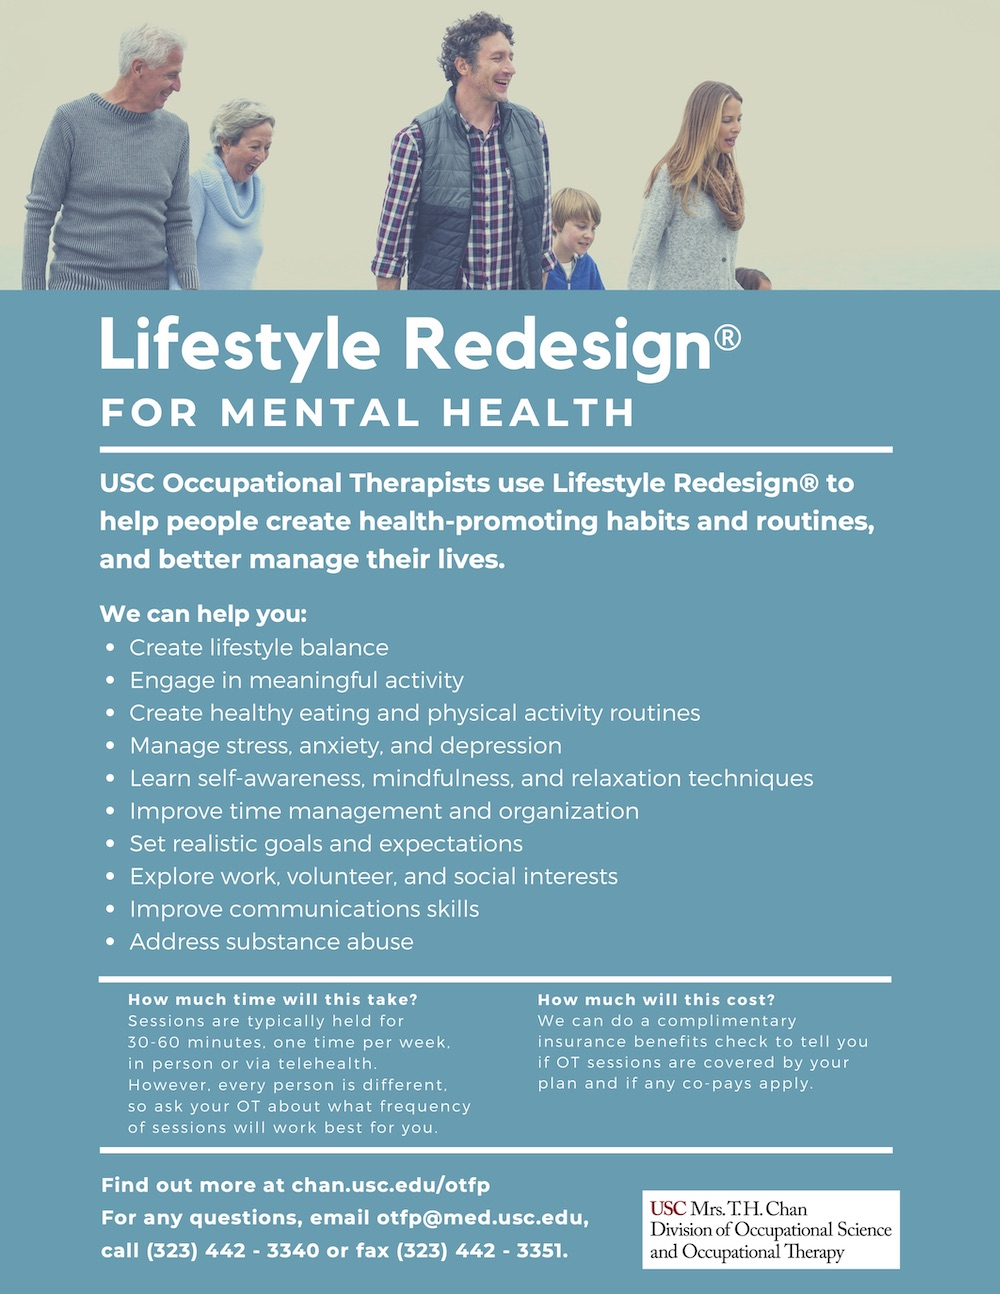 Lifestyle Redesign for Mental Health